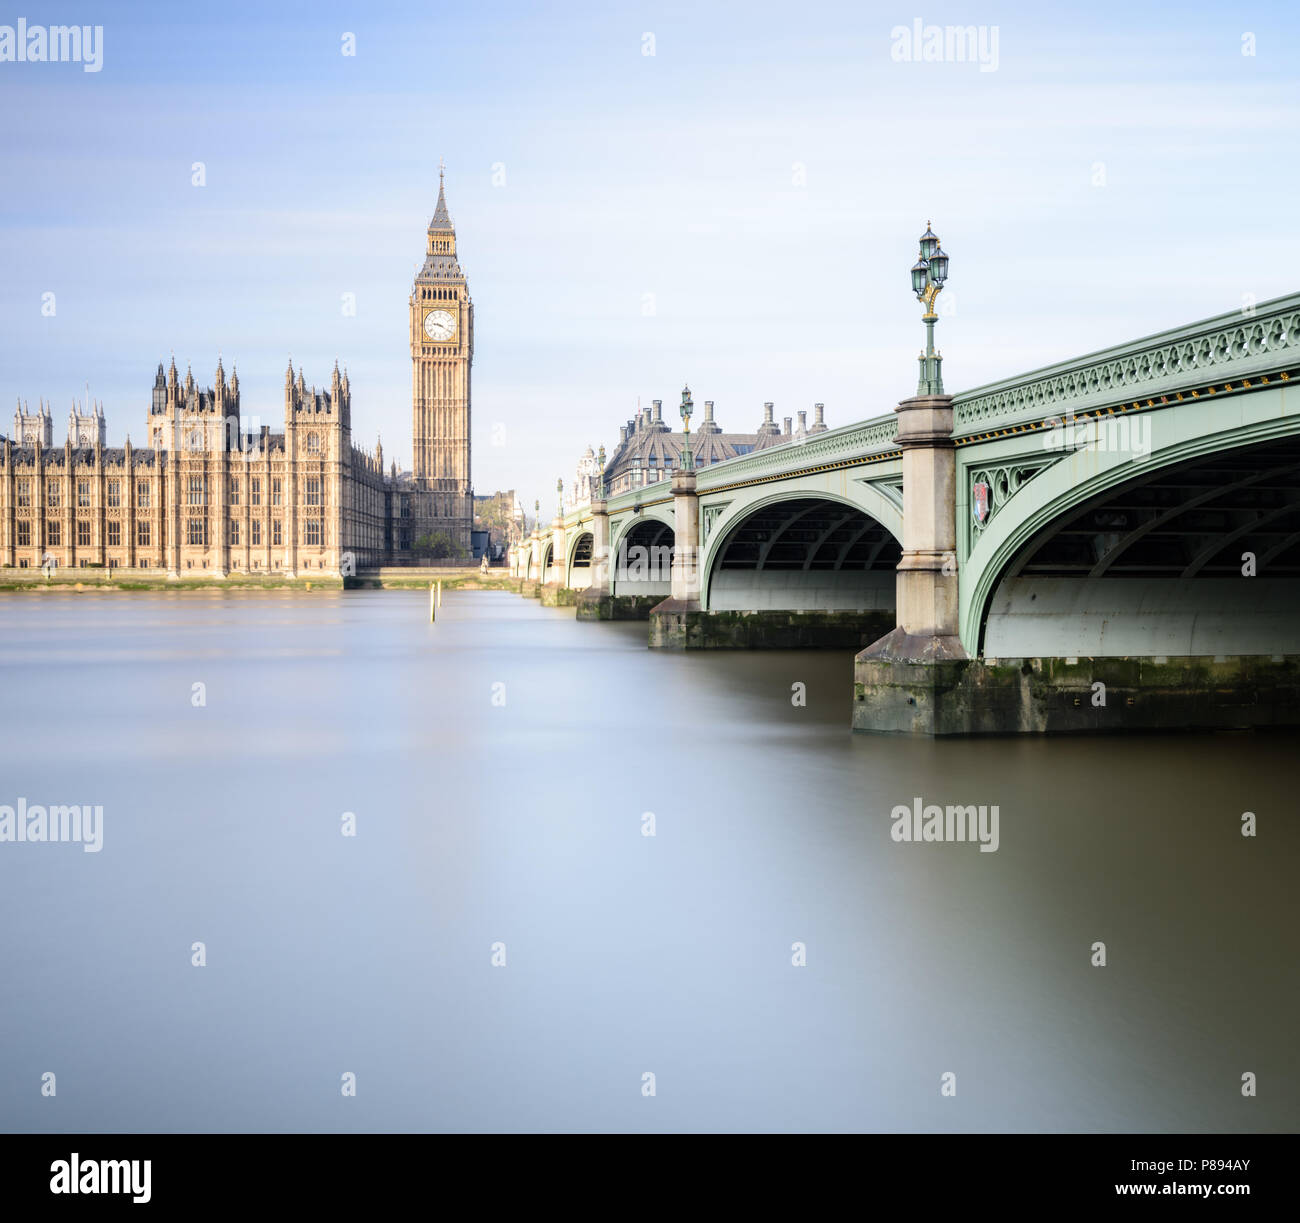 Big Ben and the Houses of Parliament in London including Westminster Bridge reflected in the smooth water of the River Thames on a bright sunny day Stock Photo